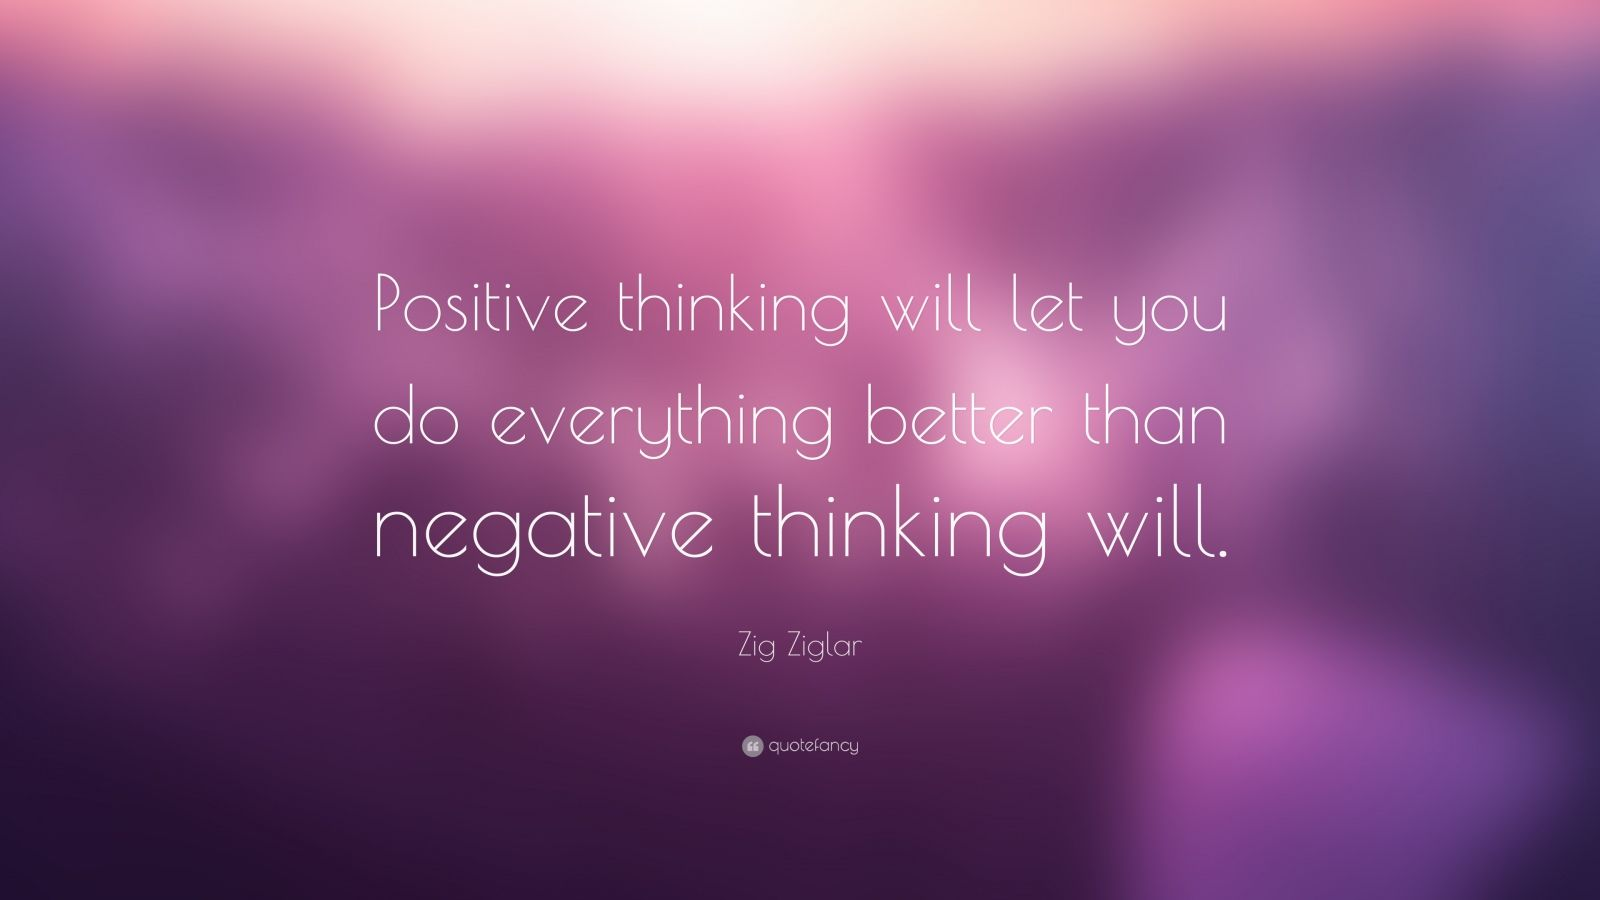 positive quotes quotefancy positive quotes positive thinking will let you do everything better than negative thinking will